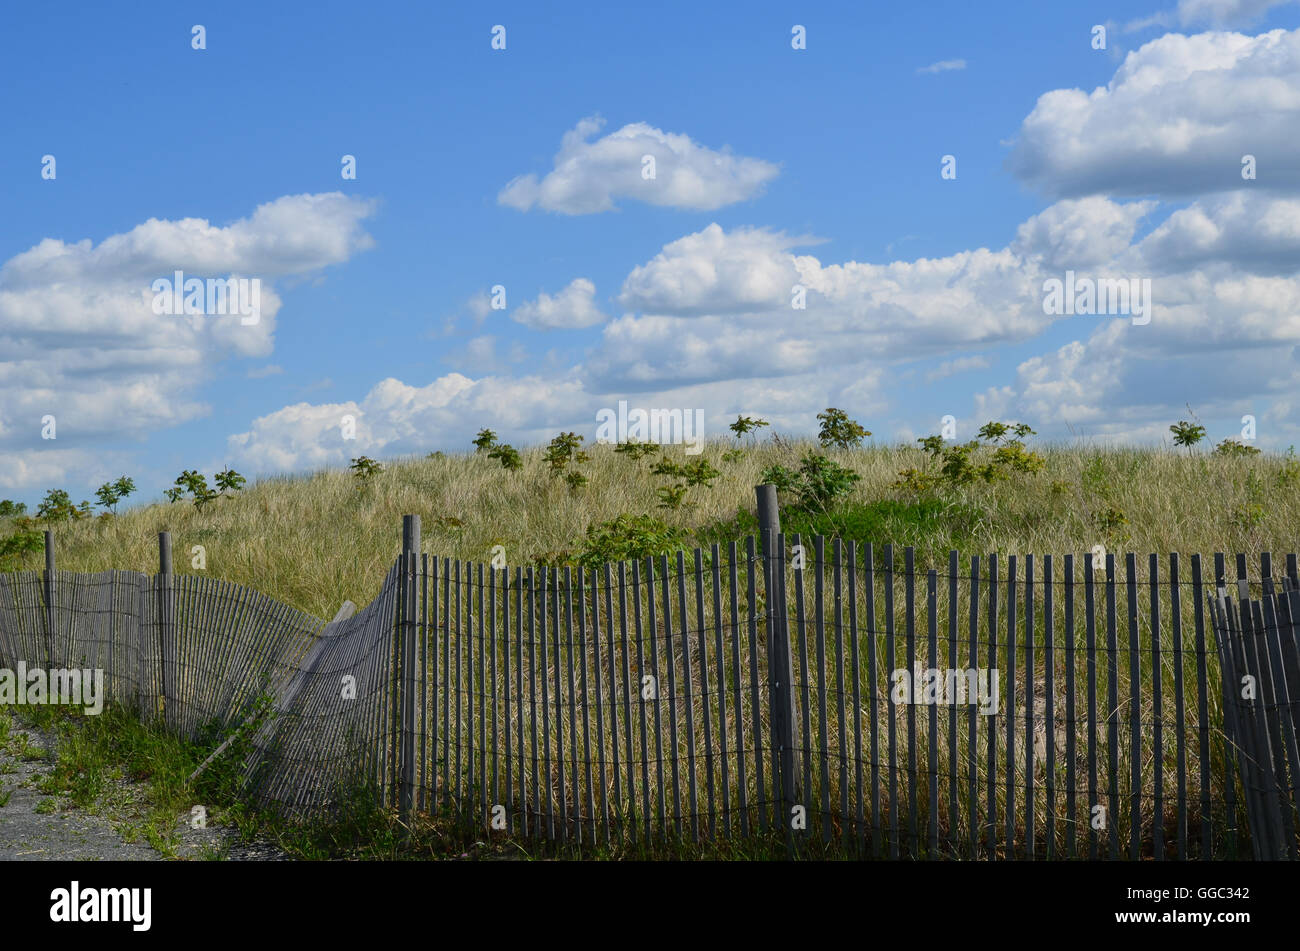 Perfect day on Boston Harbor's Spectacle Island with tall grass and a beach fence. - Stock Image